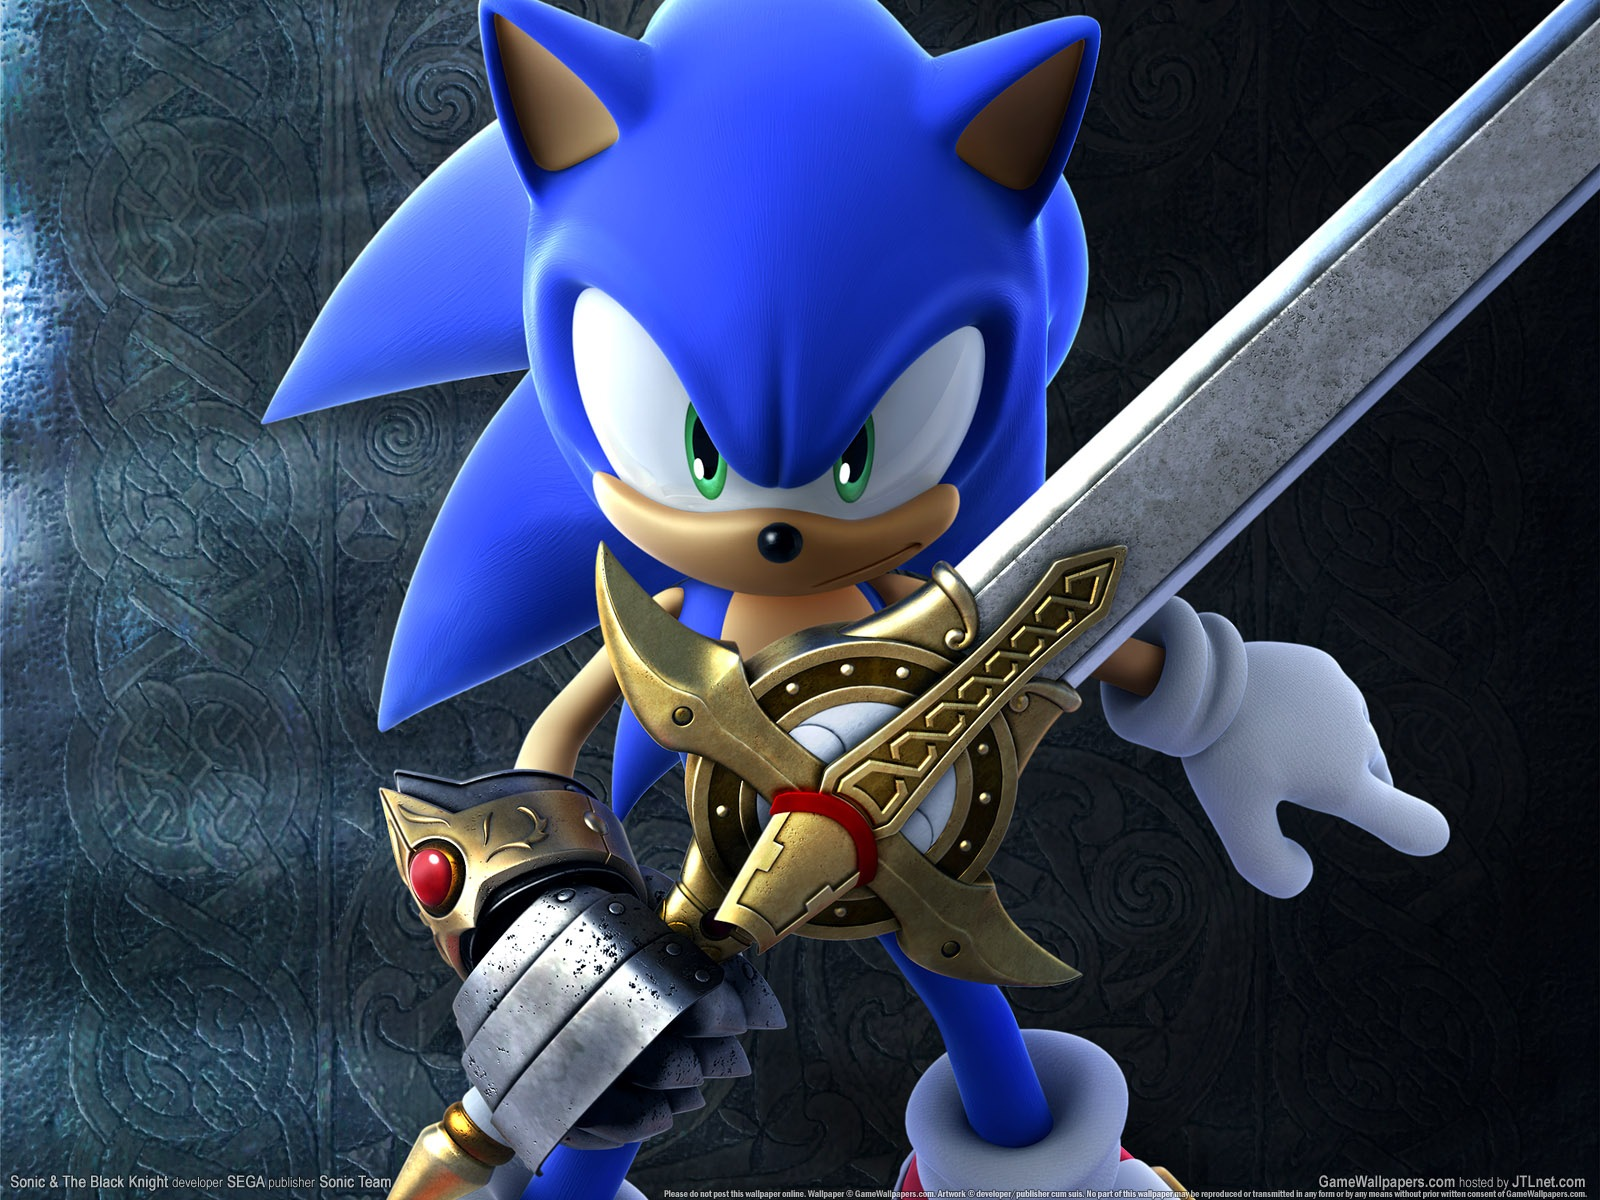 Sonic Wallpaper Hd Wallpapers Background In Games